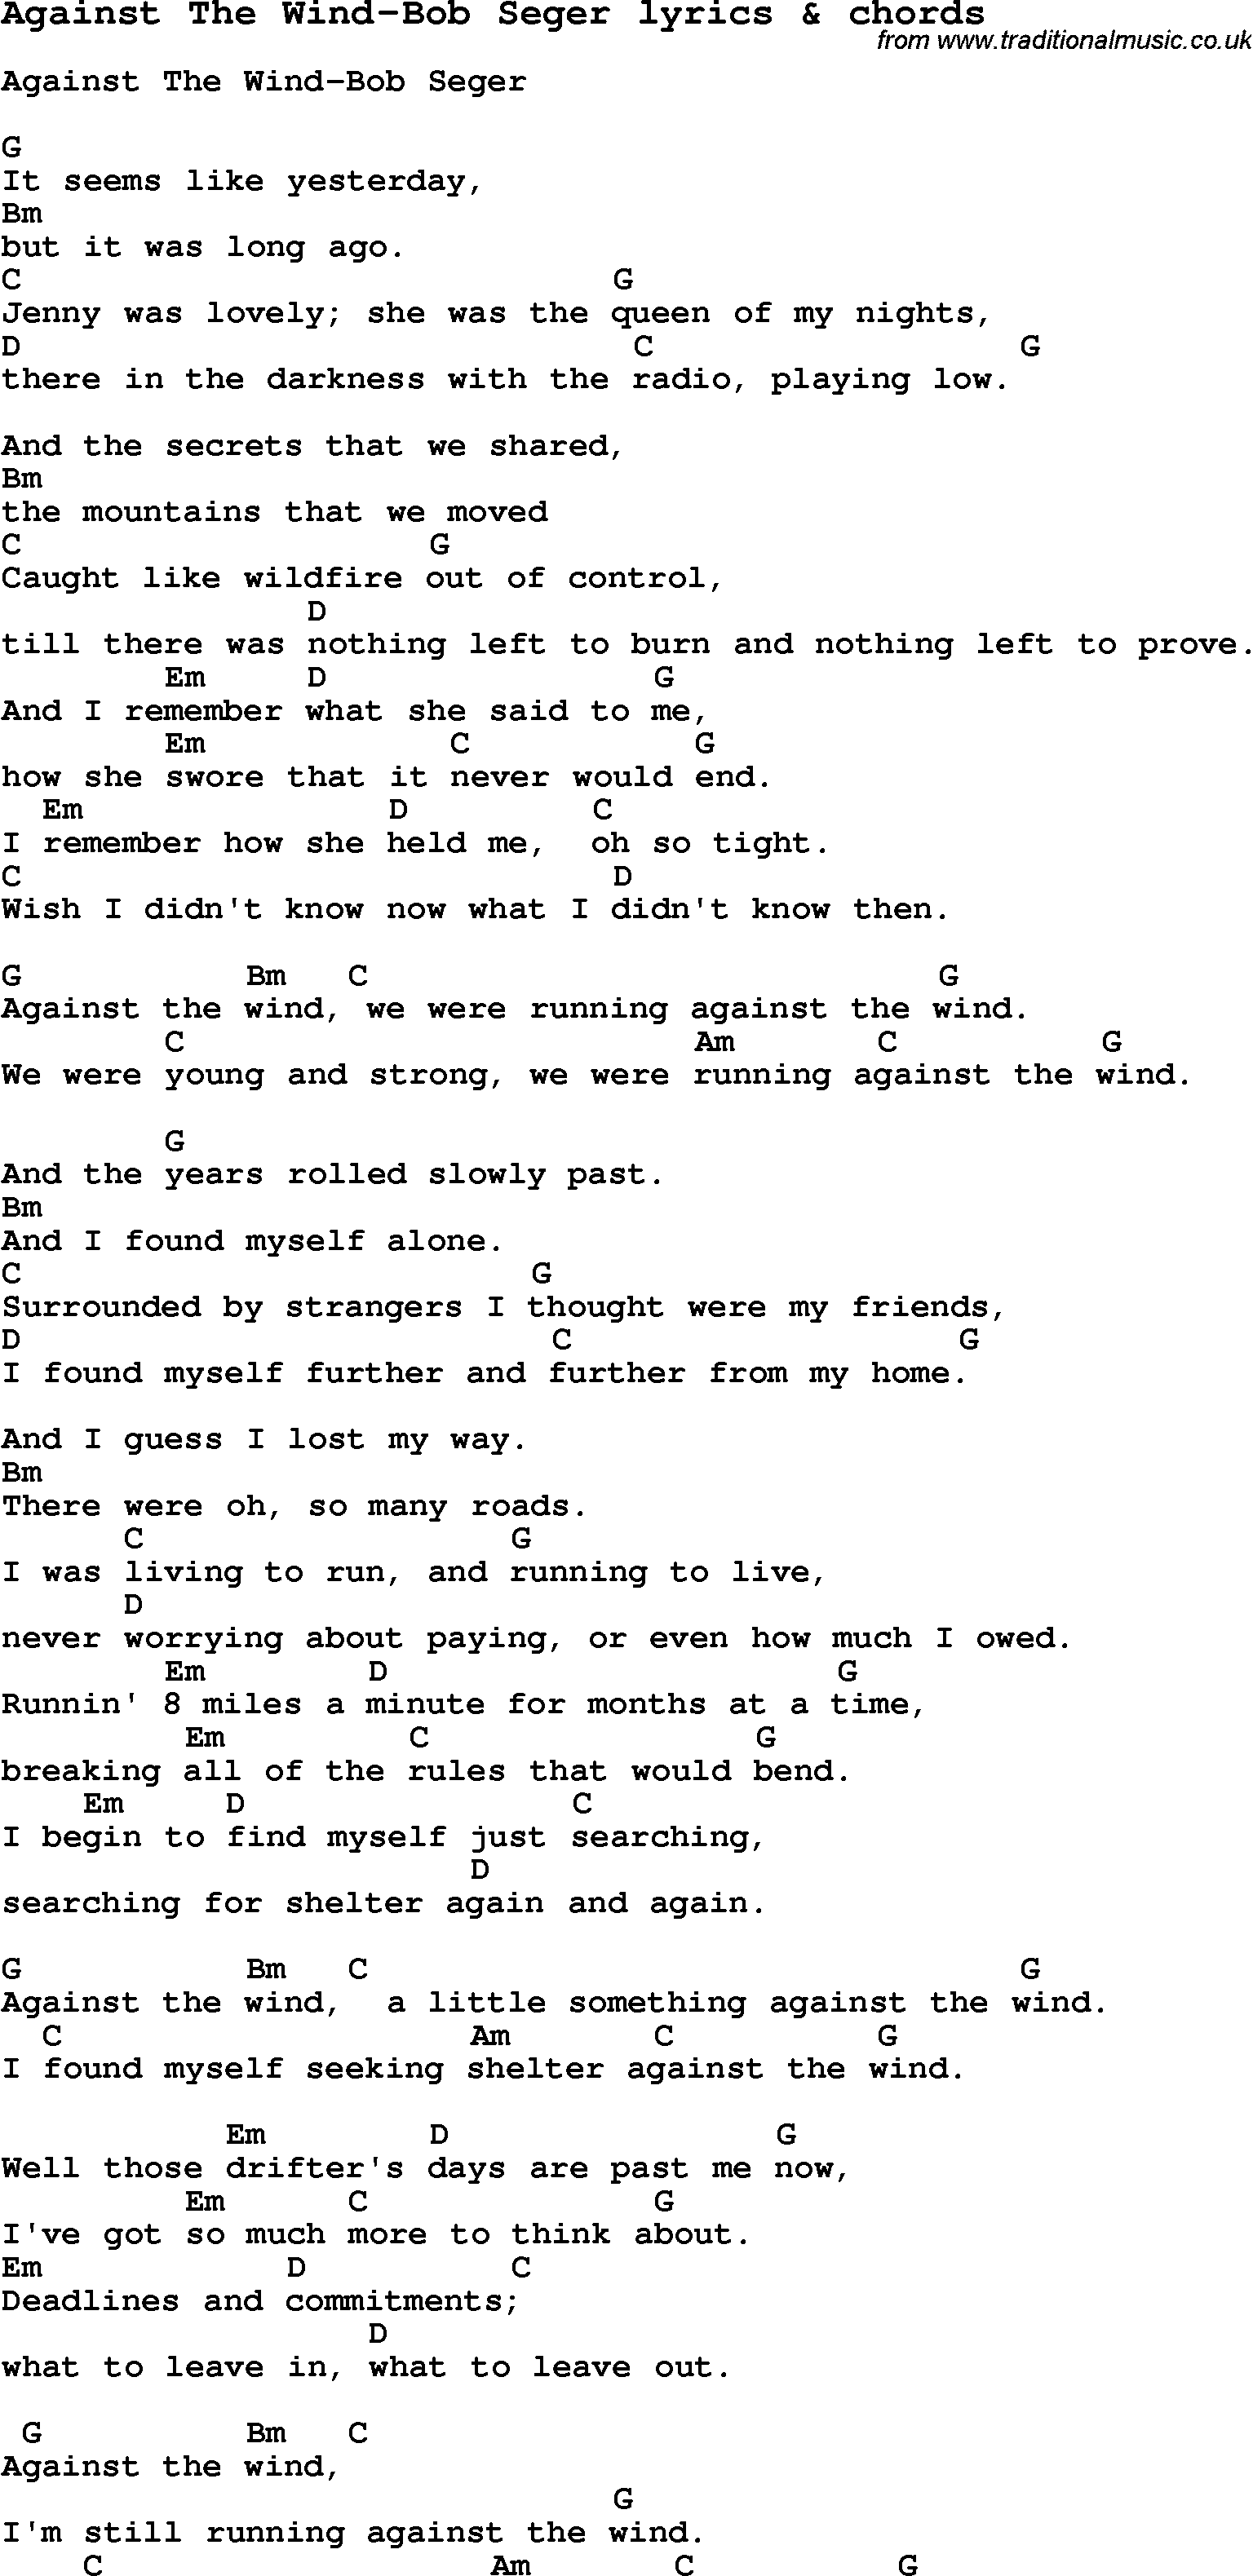 Love song lyrics foragainst the wind bob seger with chords love song lyrics for against the wind bob seger with chords for ukulele hexwebz Images